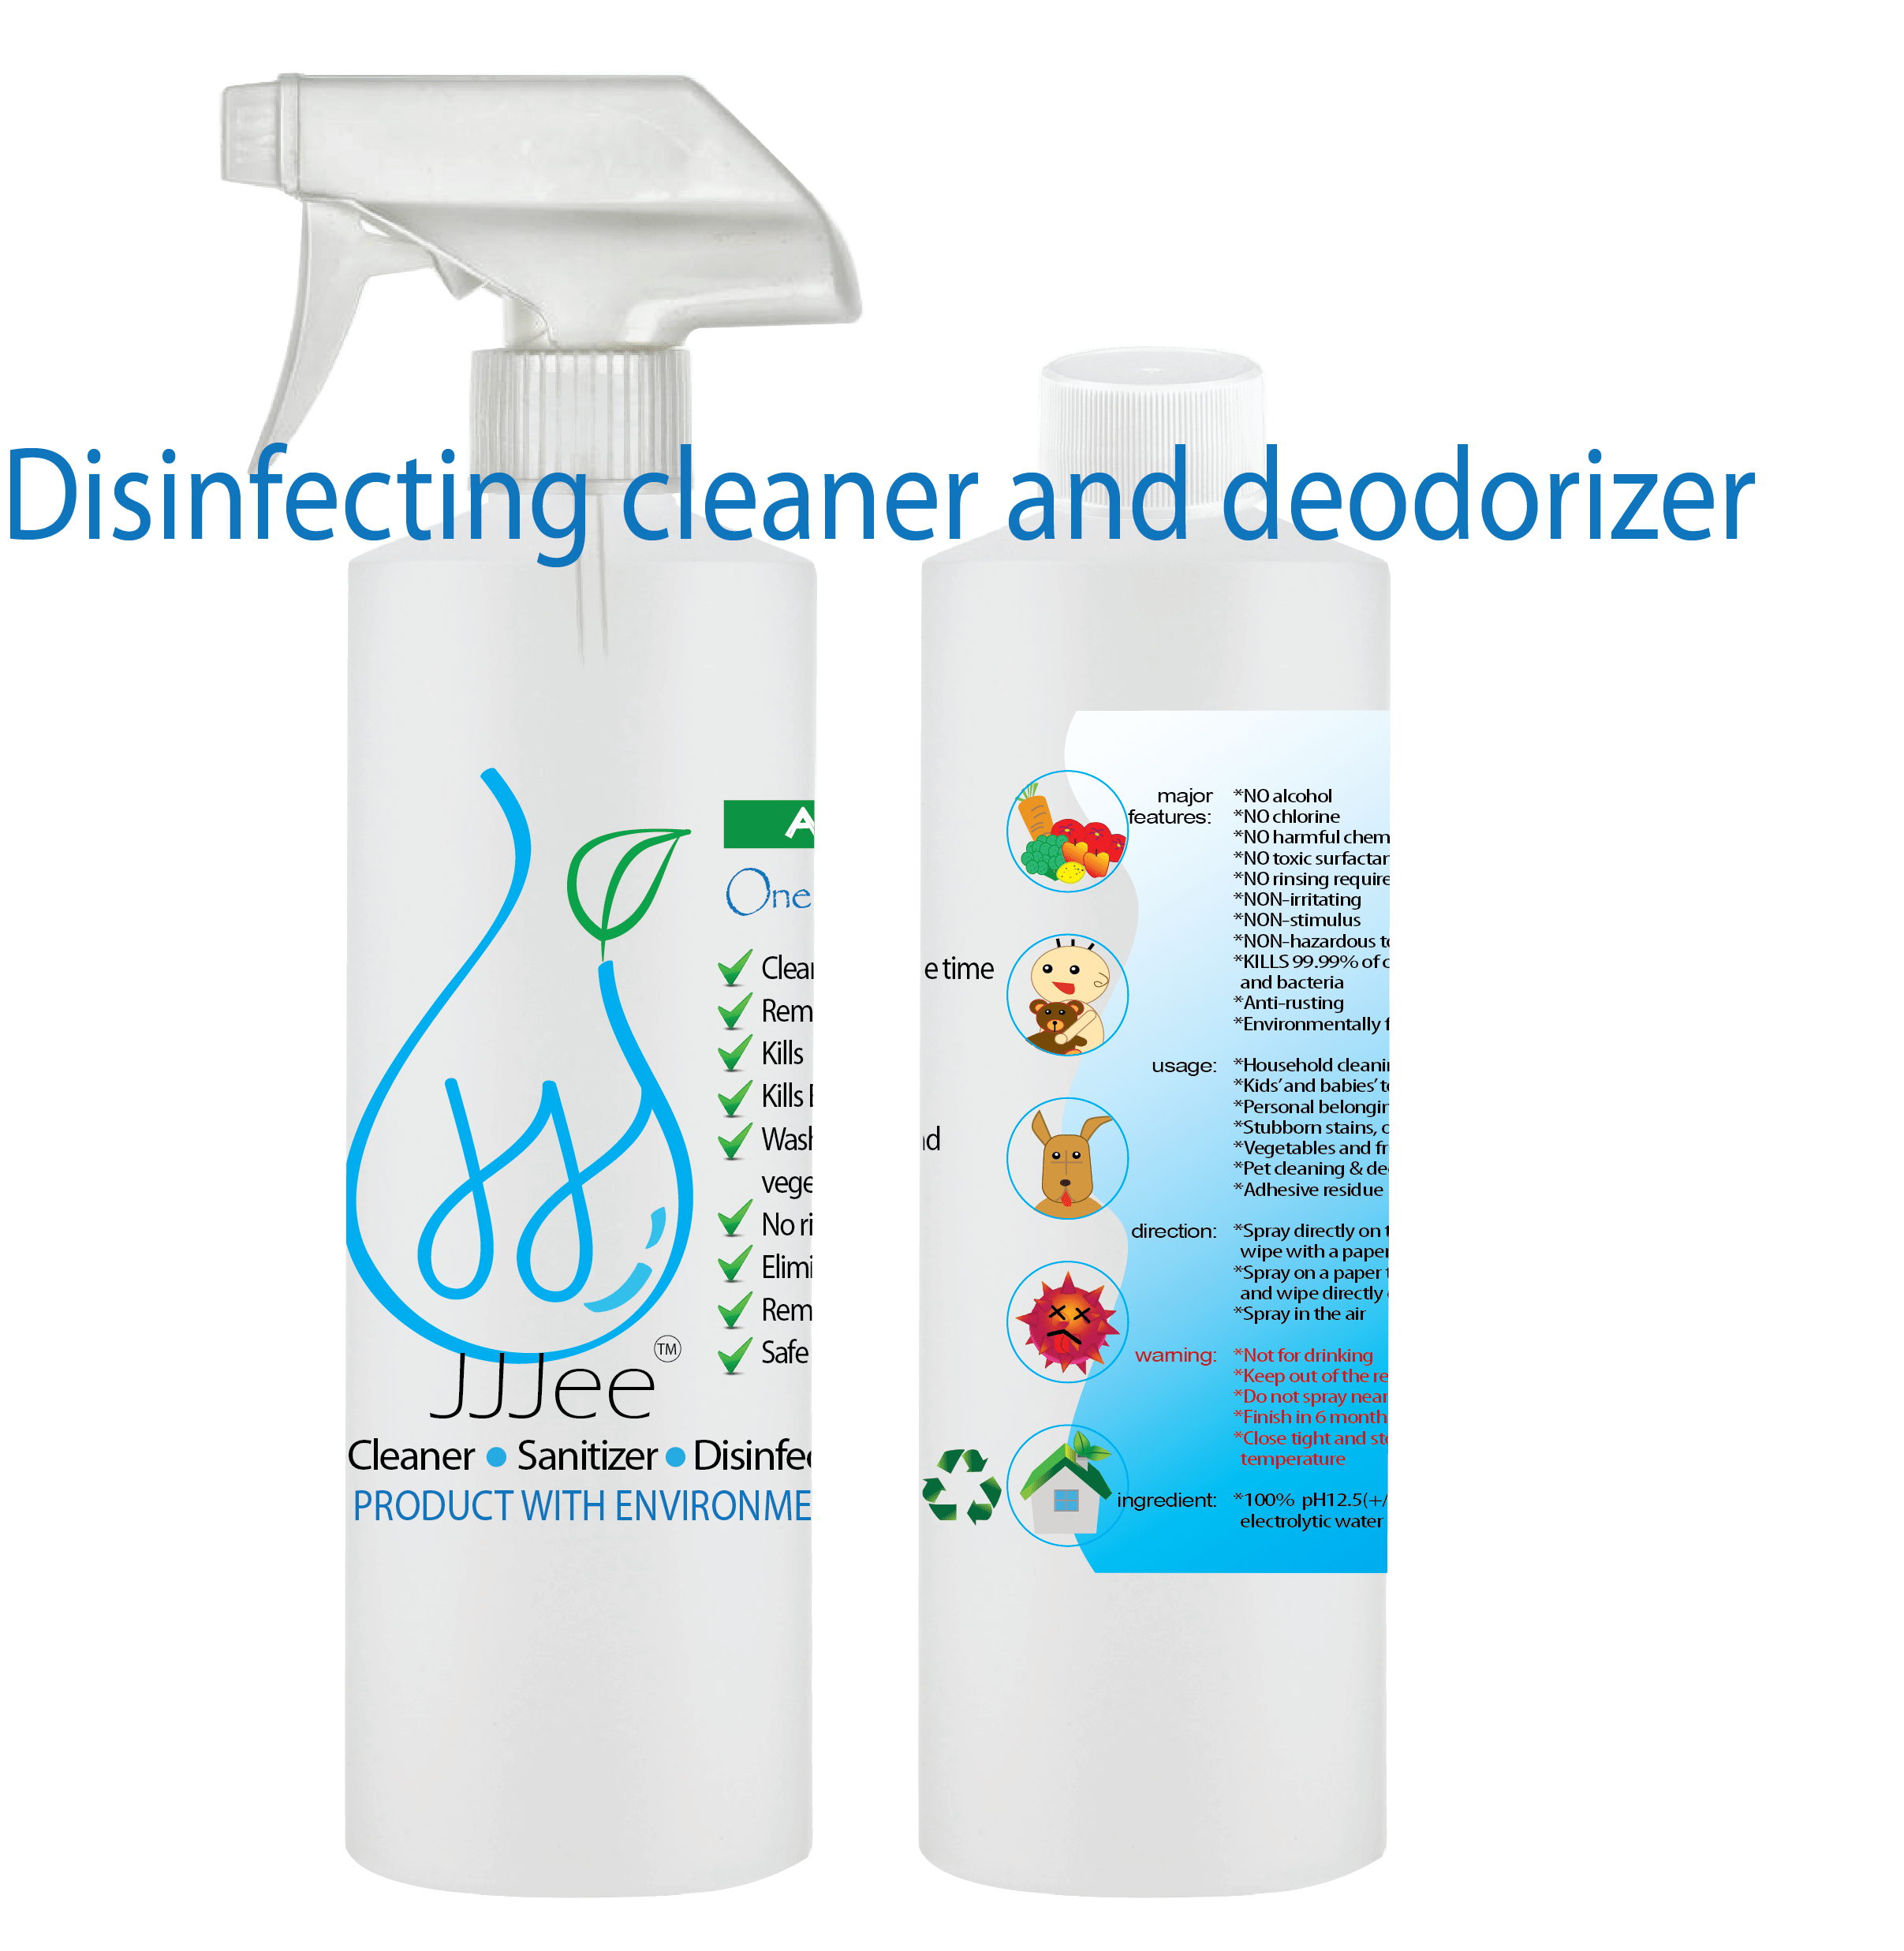 Clean clipart disinfectant. Jjjee all in one